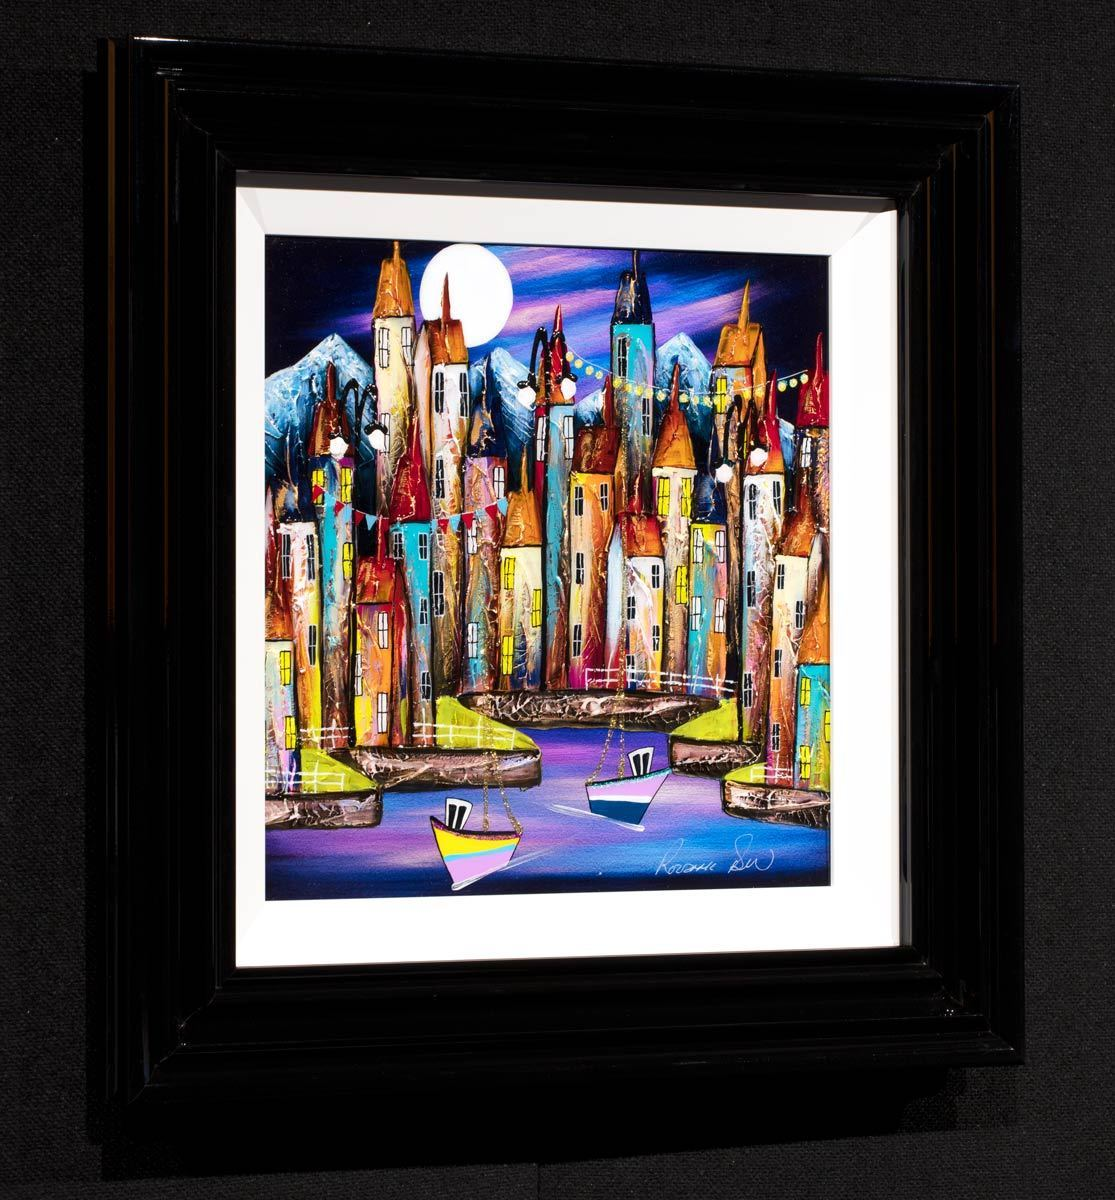 Copy of A Quiet Night II - Original Rozanne Bell Framed